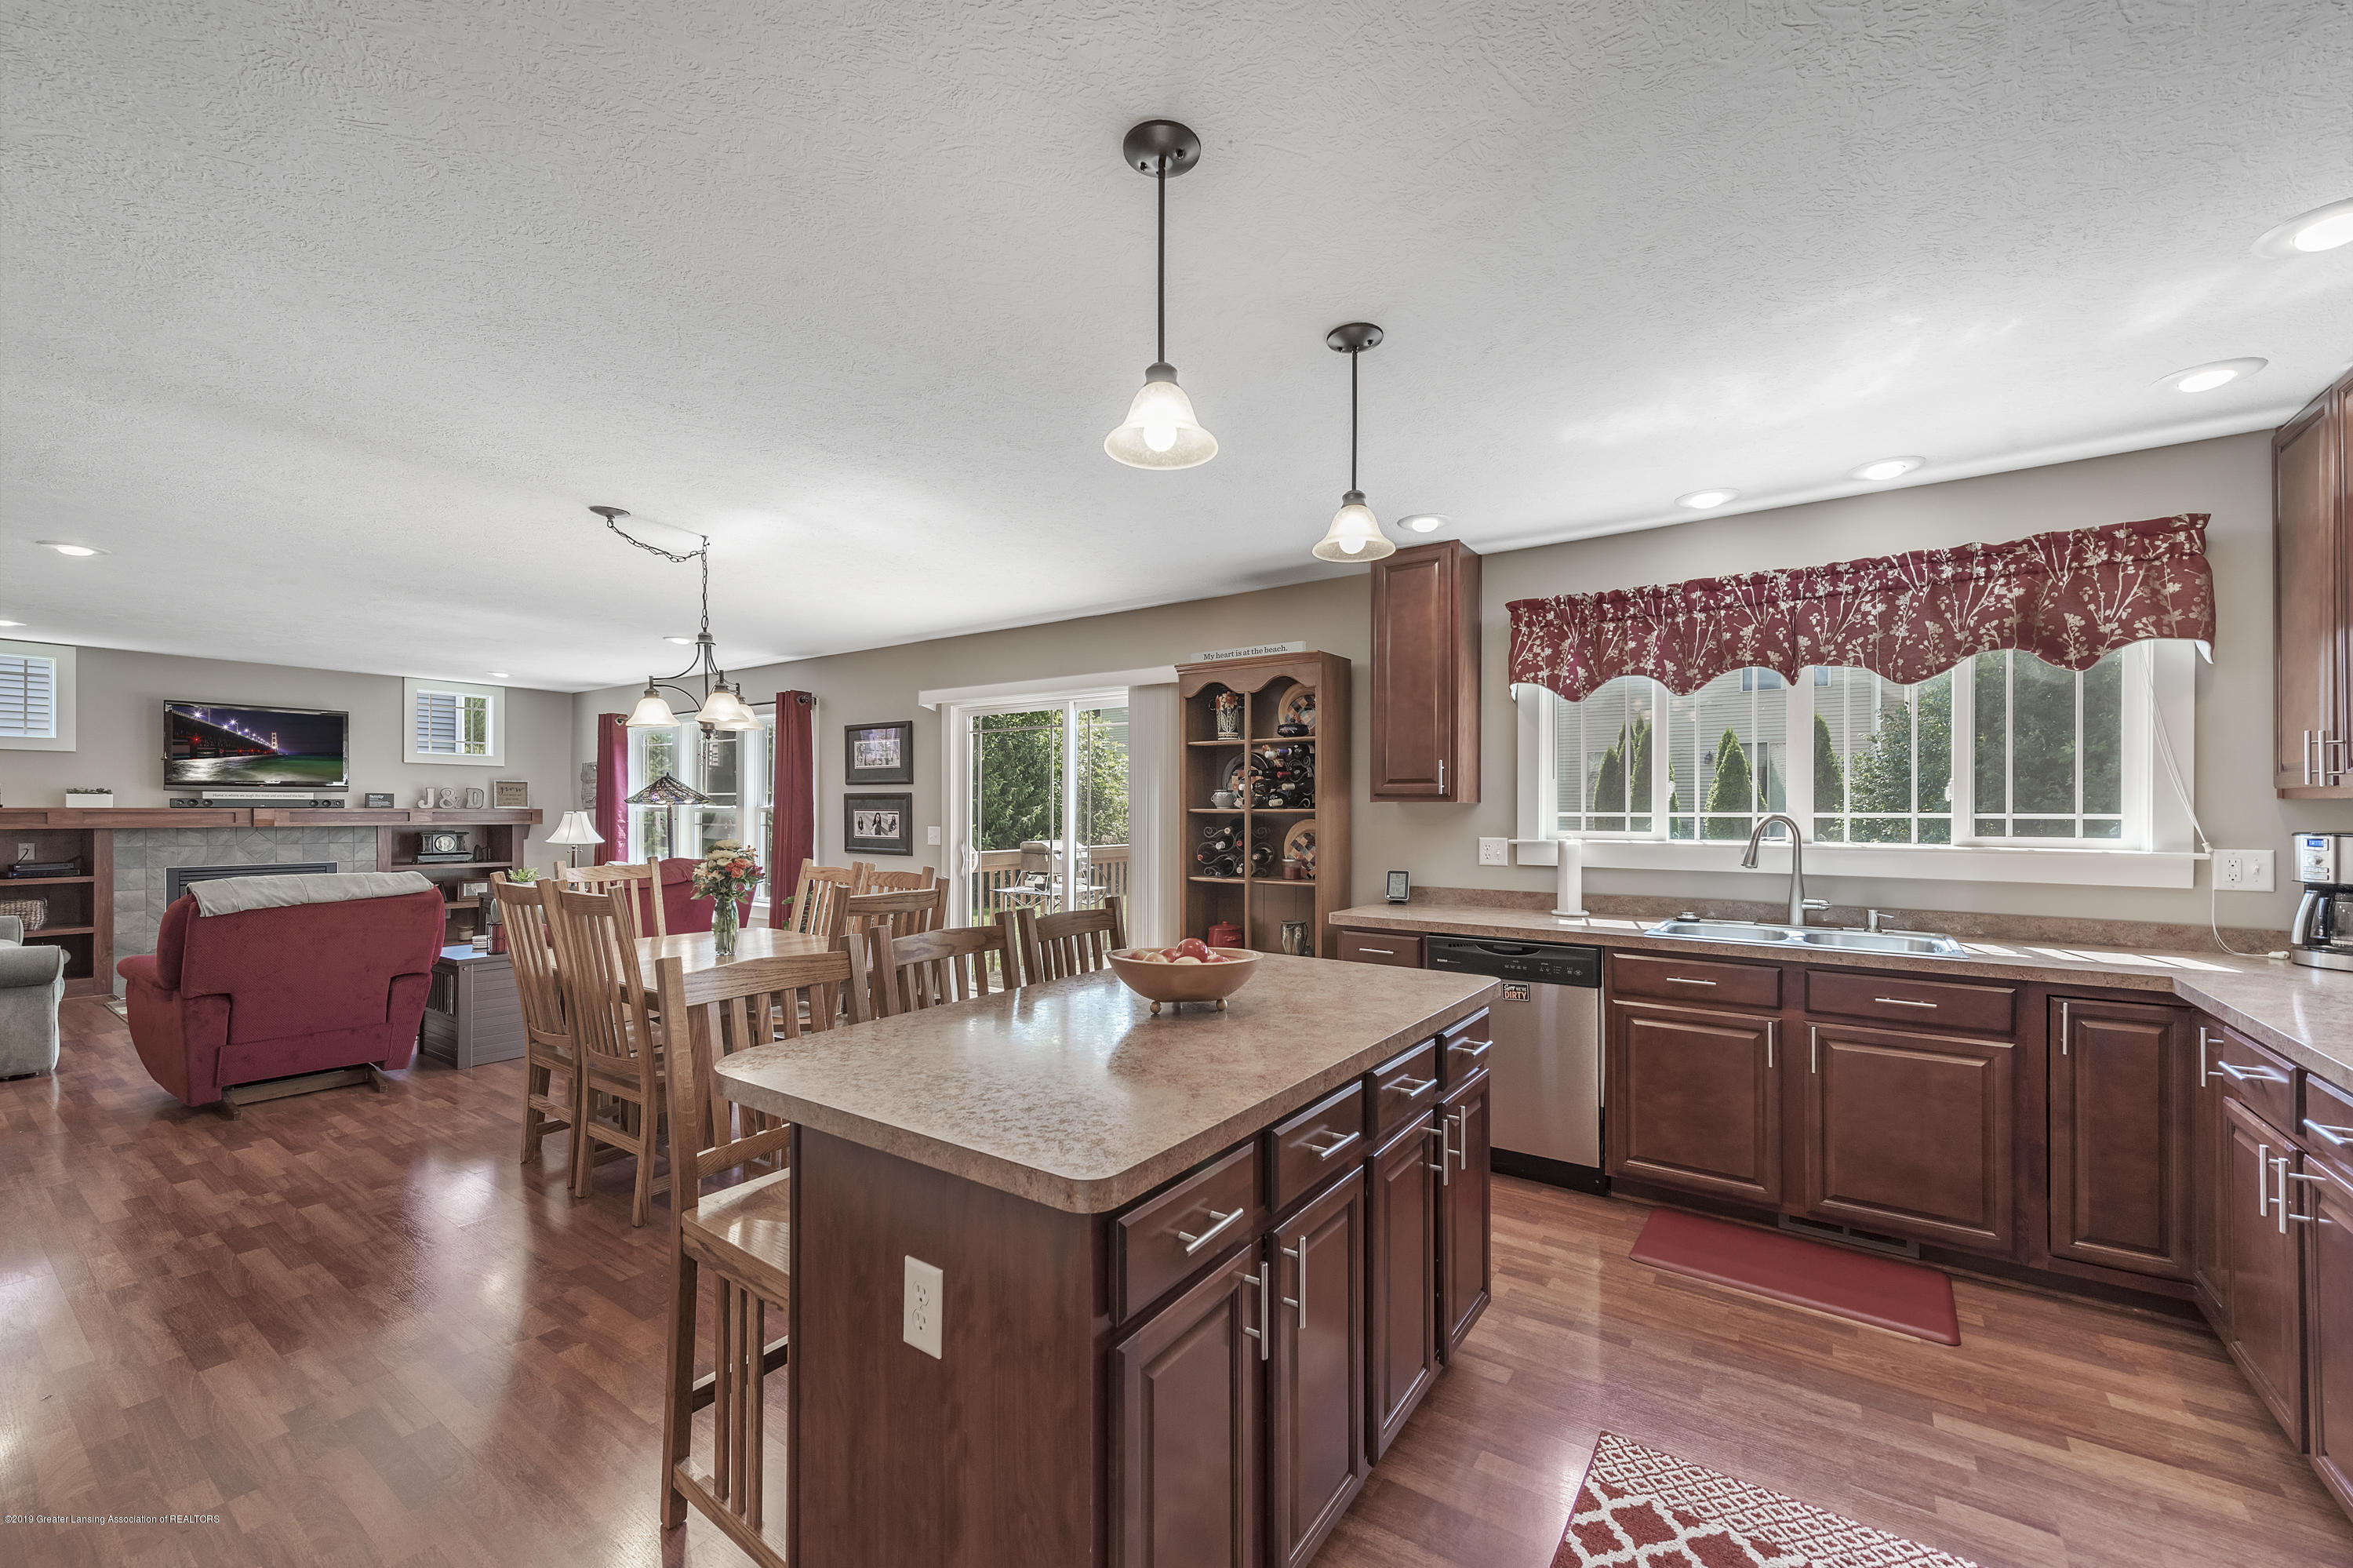 5850 Chartres Way - 5850-Chartres-Way-East-Lansing-MI-14 - 14